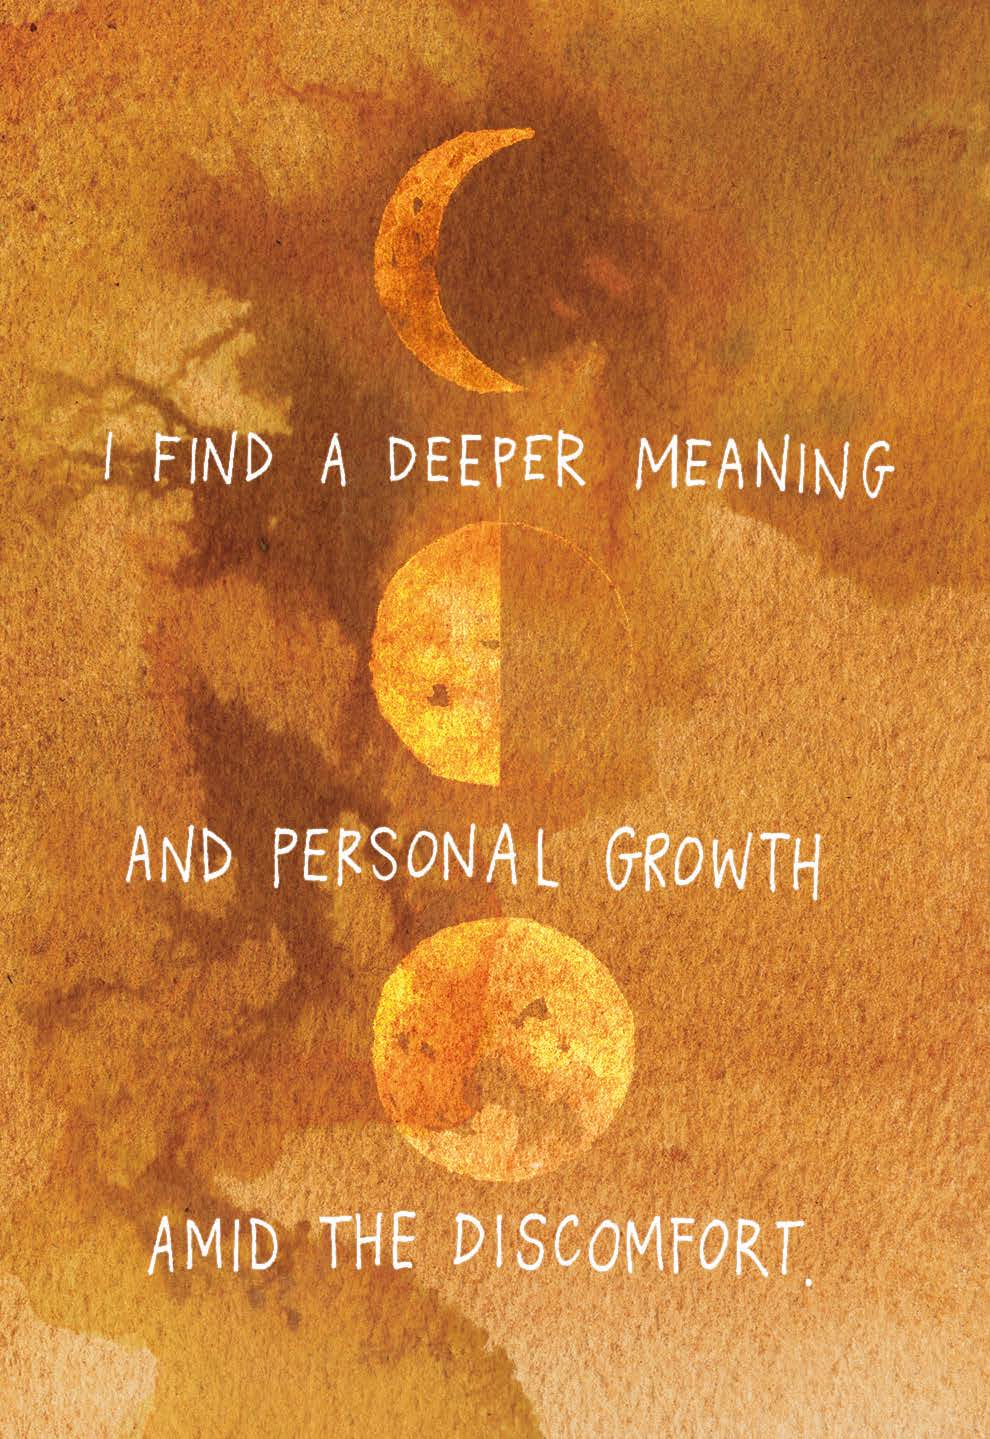 Find meaning and growth amid discomfort | The Universe Has Your Back card deck